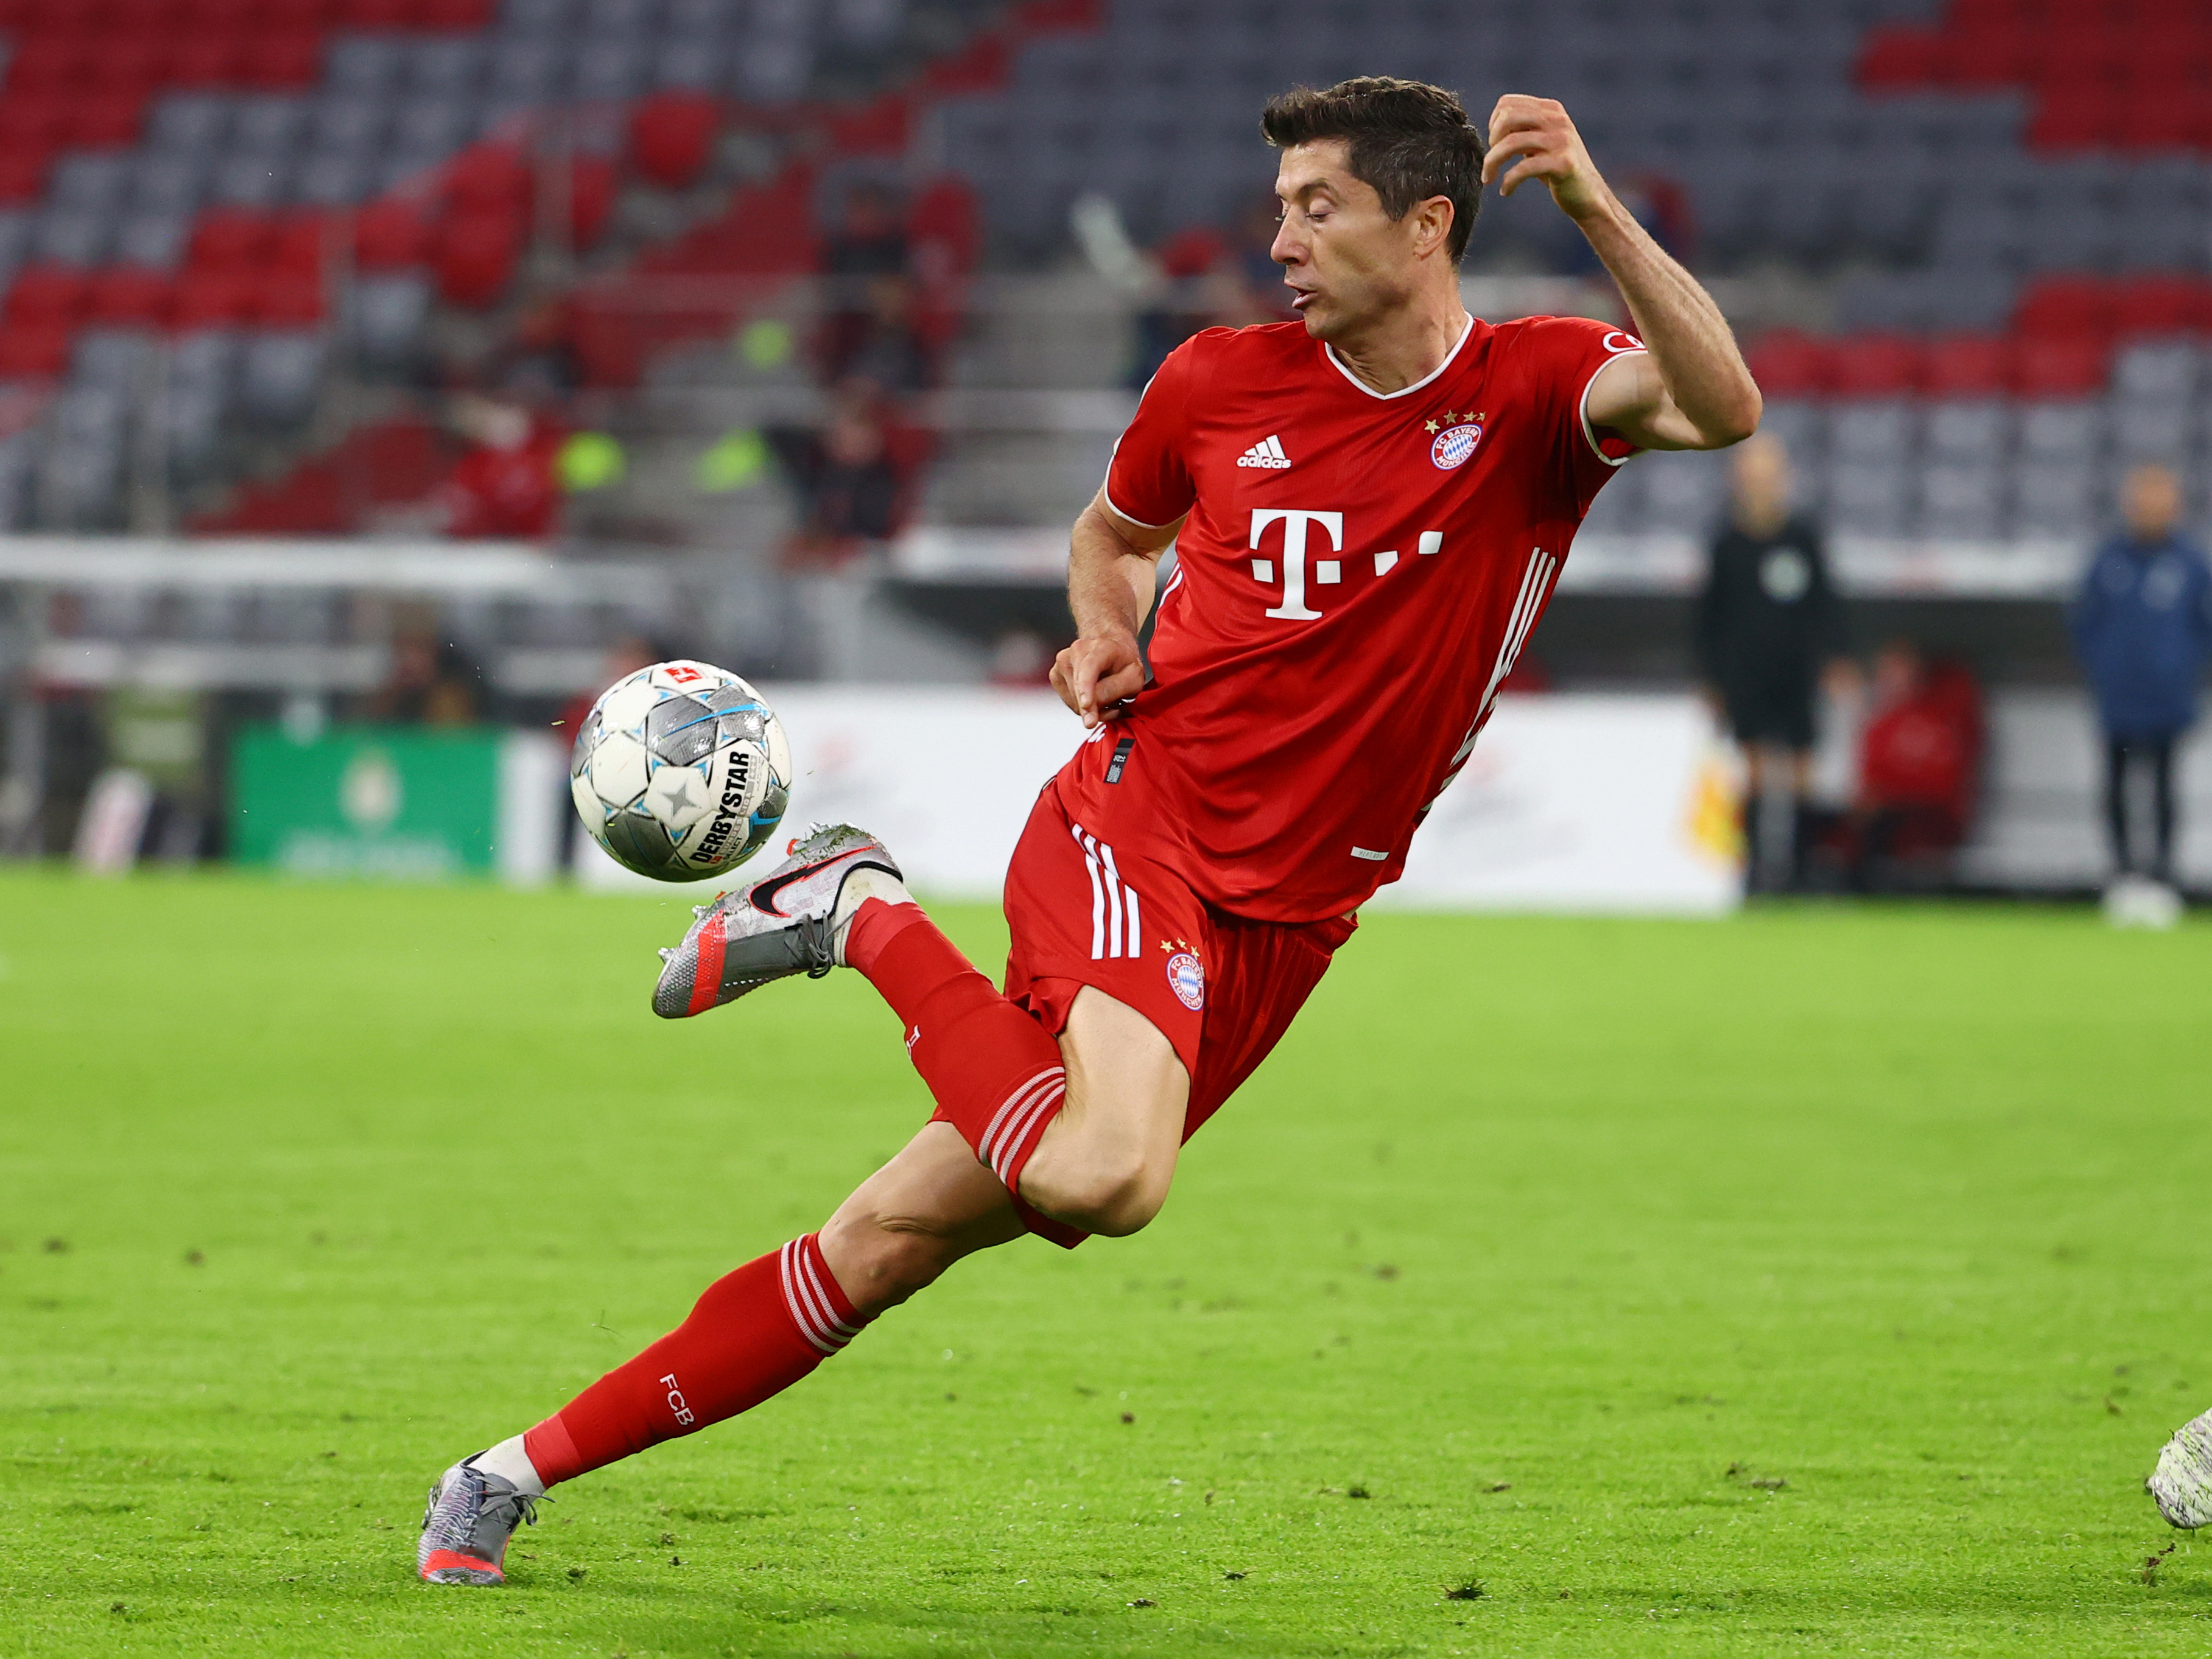 Bayern Munich's Robert Lewandowski in action, as play resumes behind closed doors following the outbreak of the coronavirus disease (COVID-19) during the DFB Cup Semi Final match between Bayern Munich and Eintracht Frankfurt, at Allianz Arena, in Munich, Germany, on June 10, 2020. Photo: Reuters